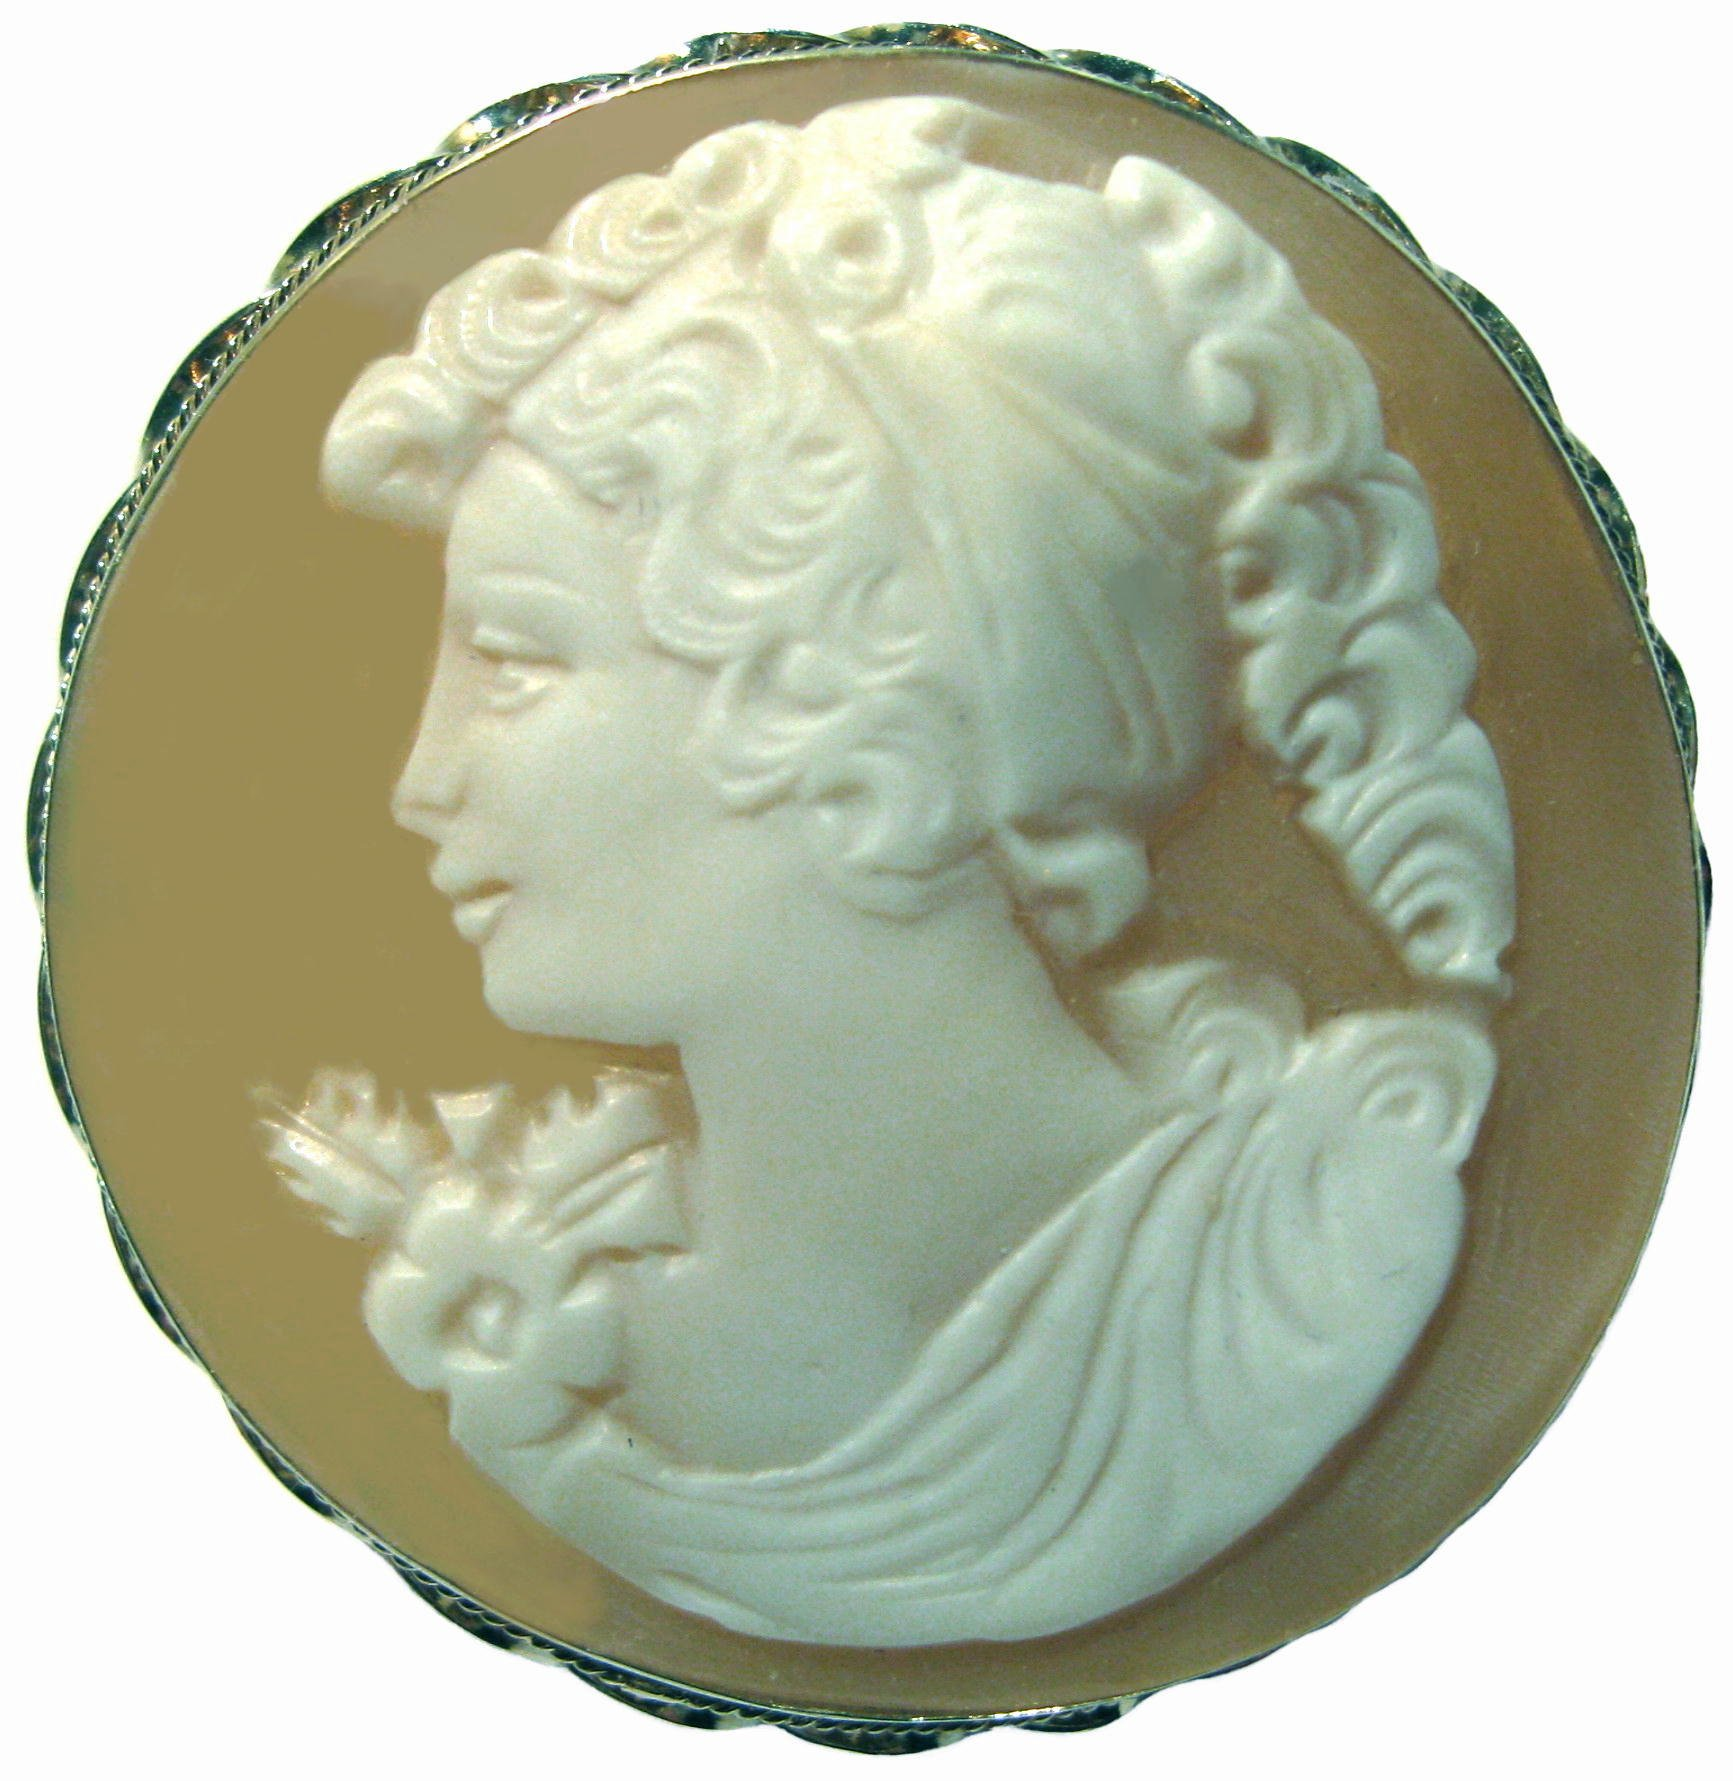 Cameo, Brooch, Pendant, Summer Love, Italian, Master Carved, Conch Shell, by cameosRus (Image #1)